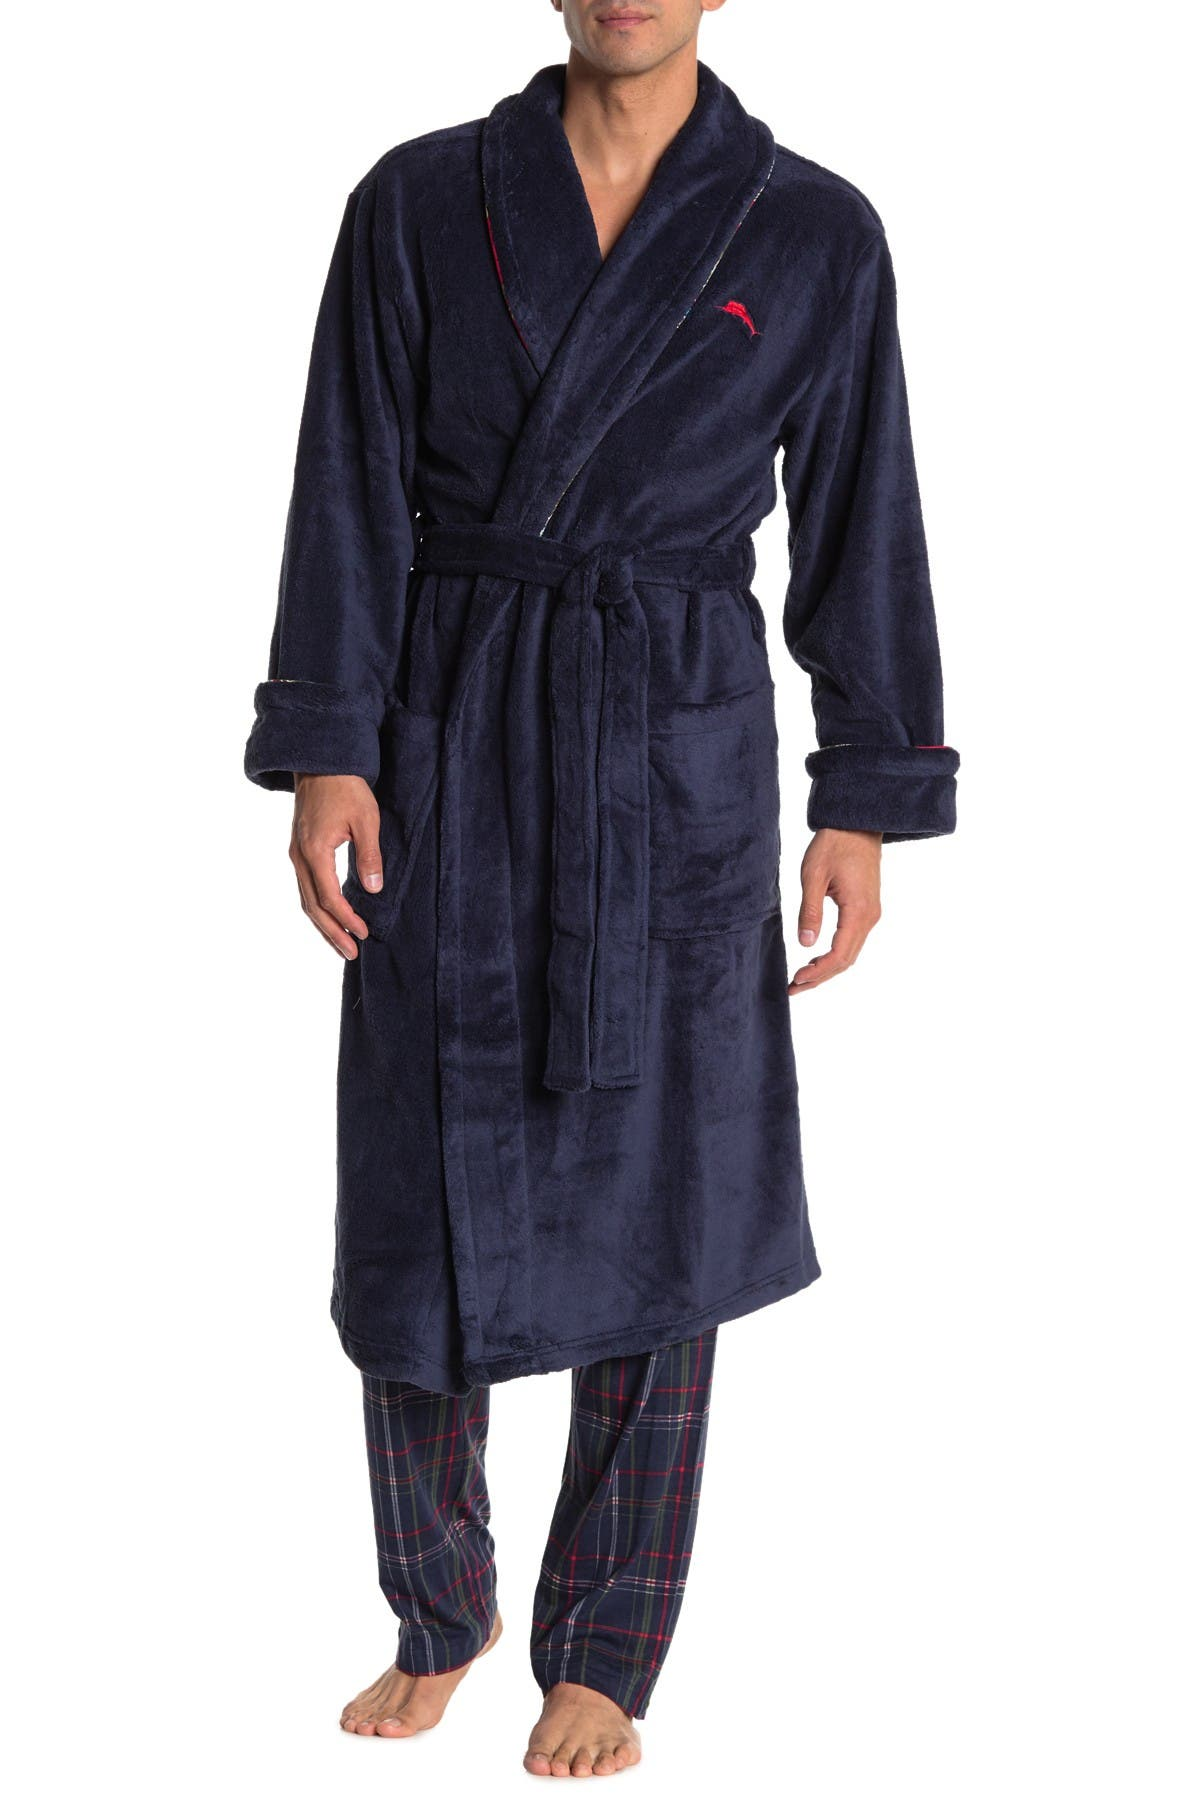 Image of Tommy Bahama Embroidered Back Plush Fleece Robe